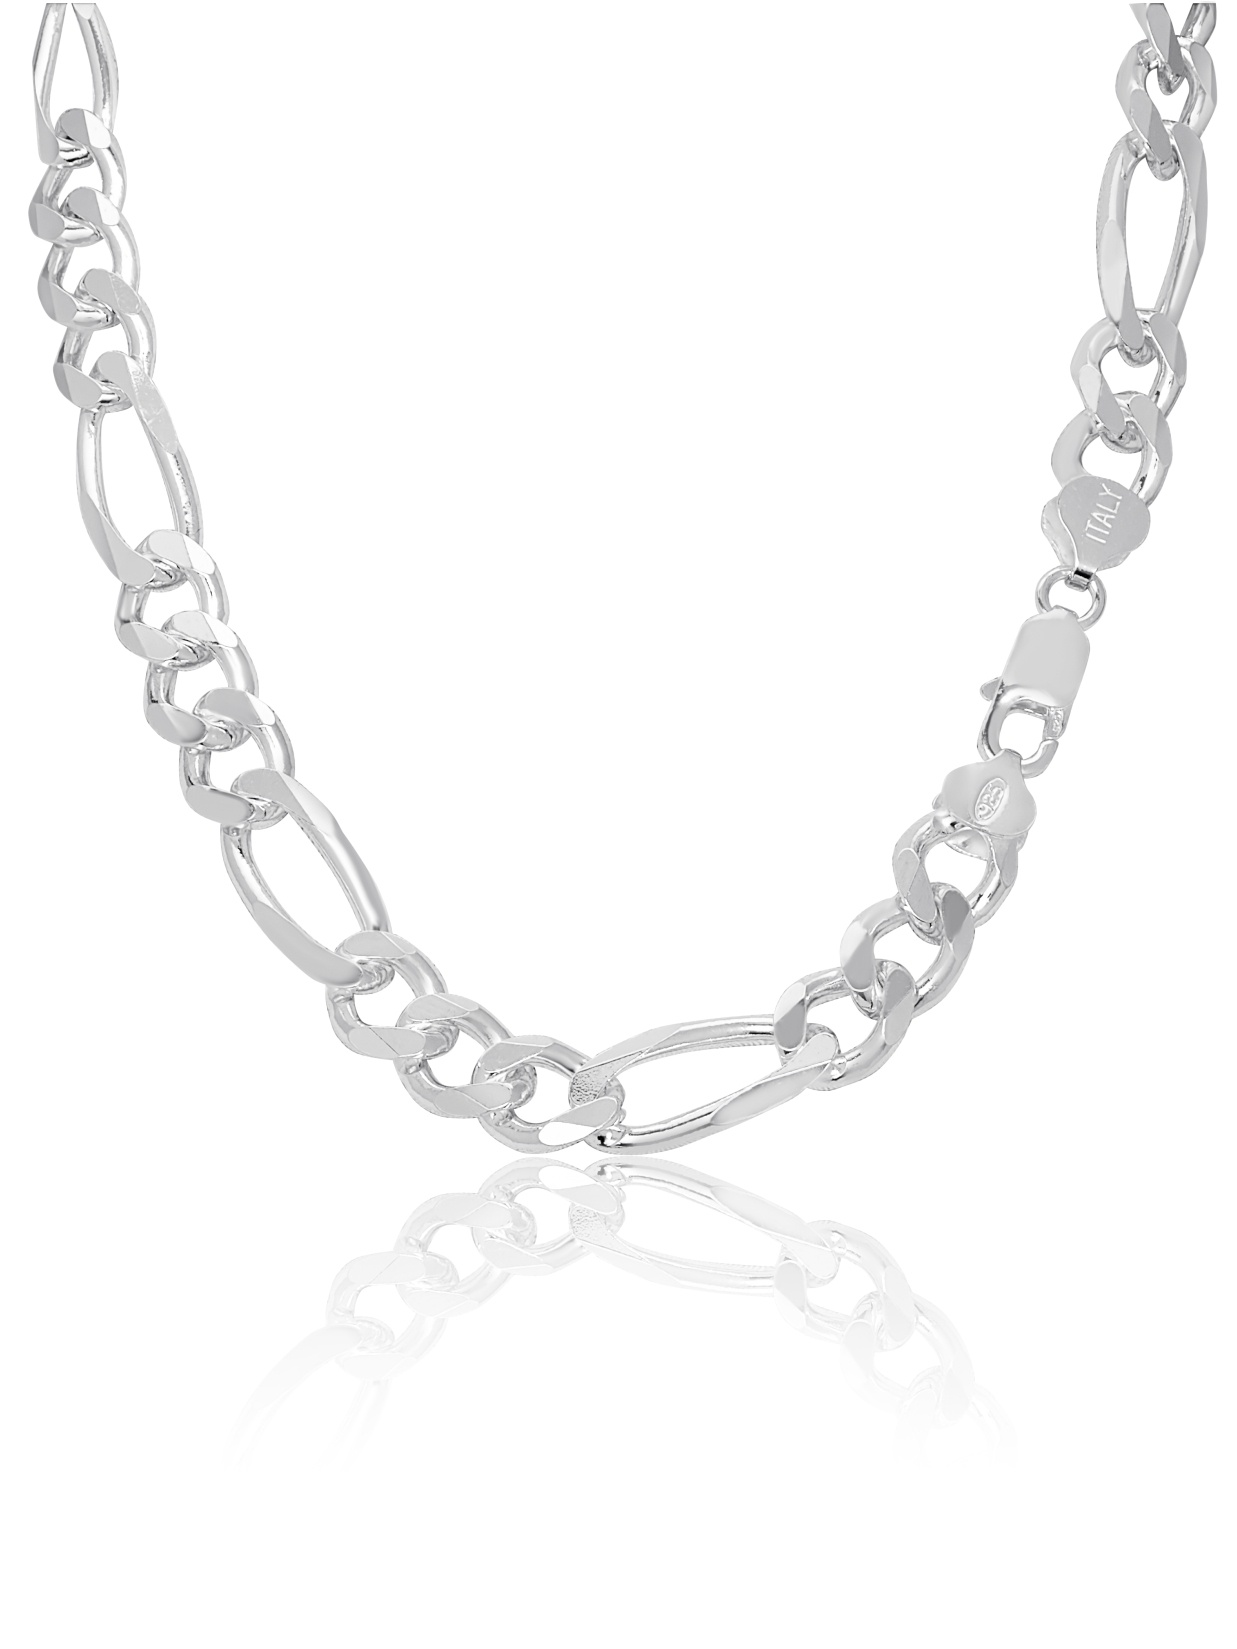 Real Sterling Silver Mens Boys Figaro Solid Chain Bracelet or Necklace 925 Italy